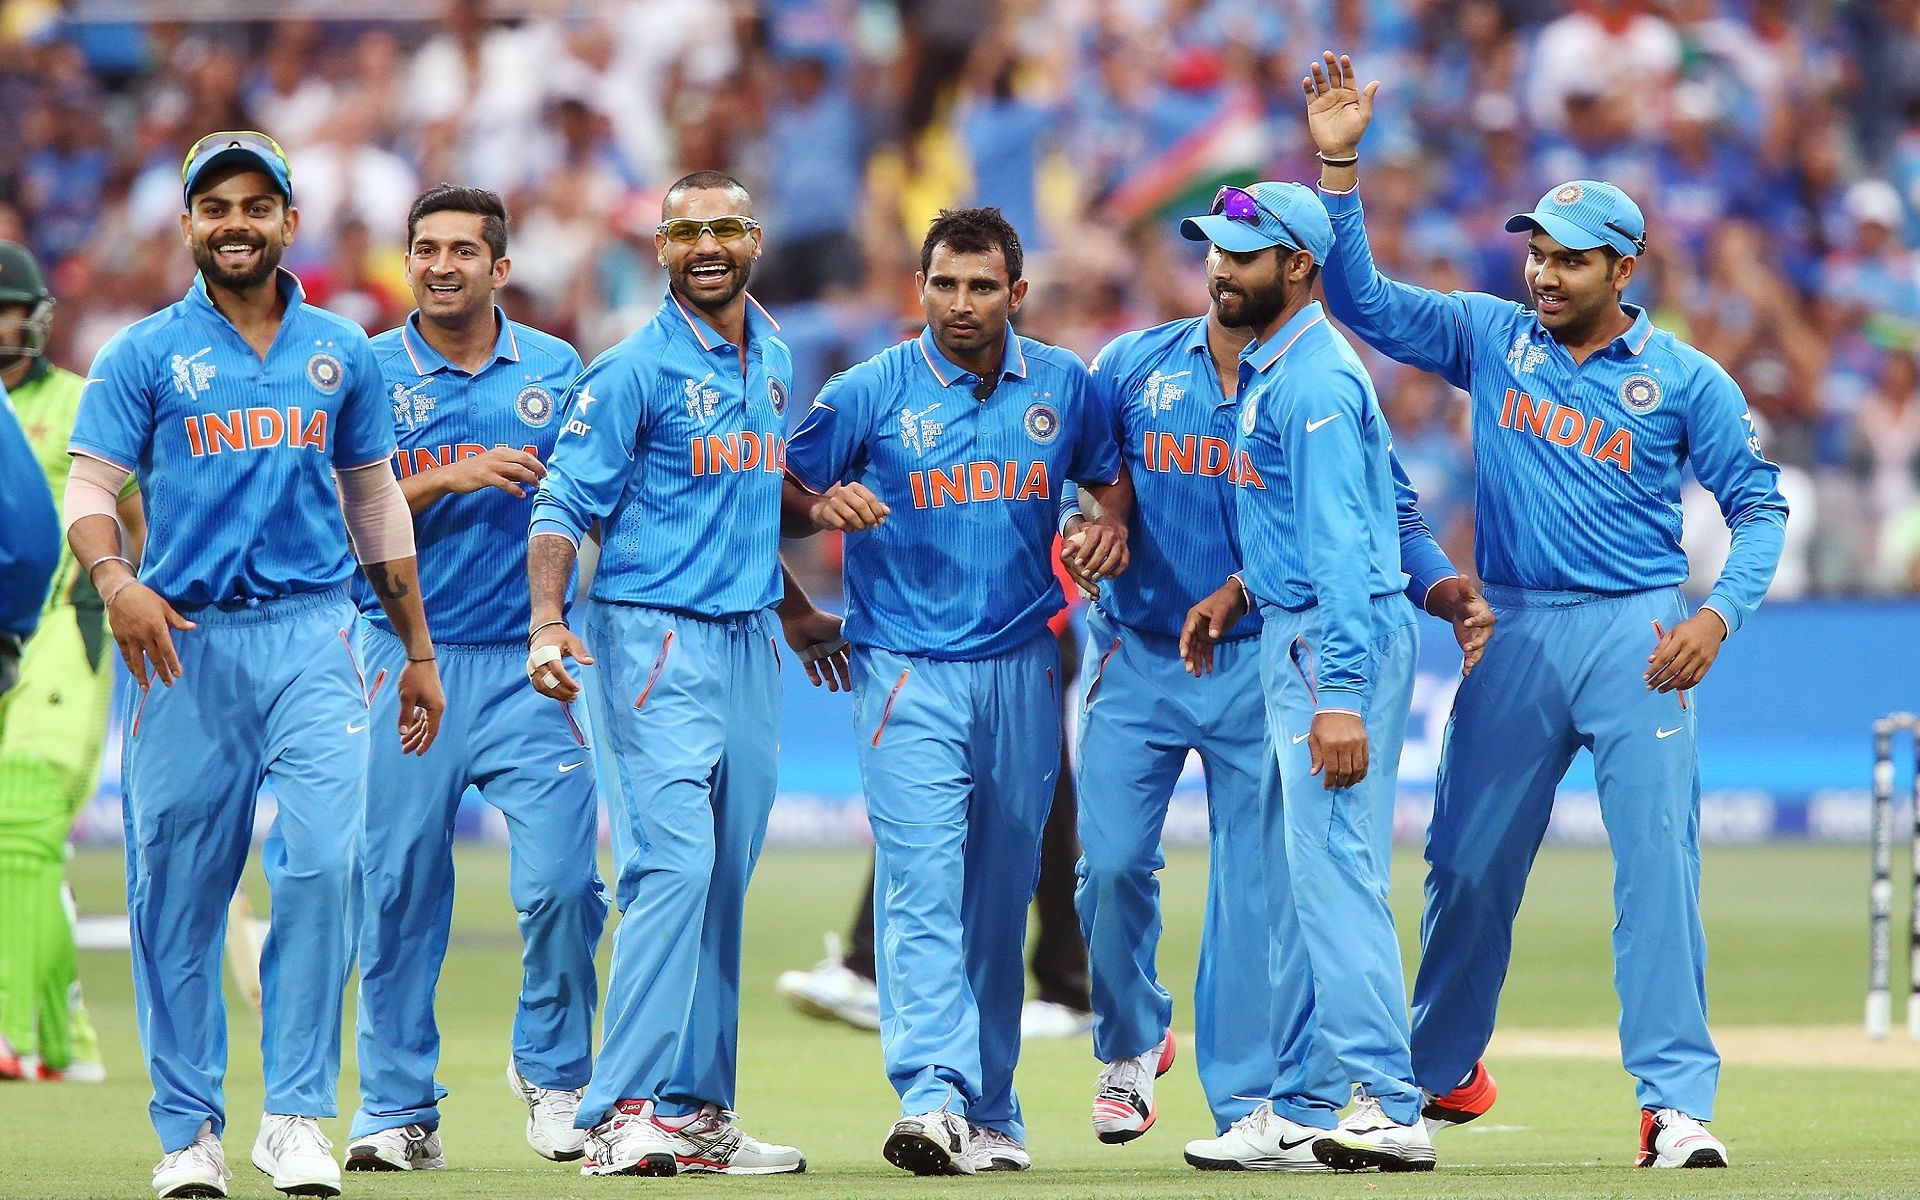 Happy indian cricket team on the ground nice wallpapers